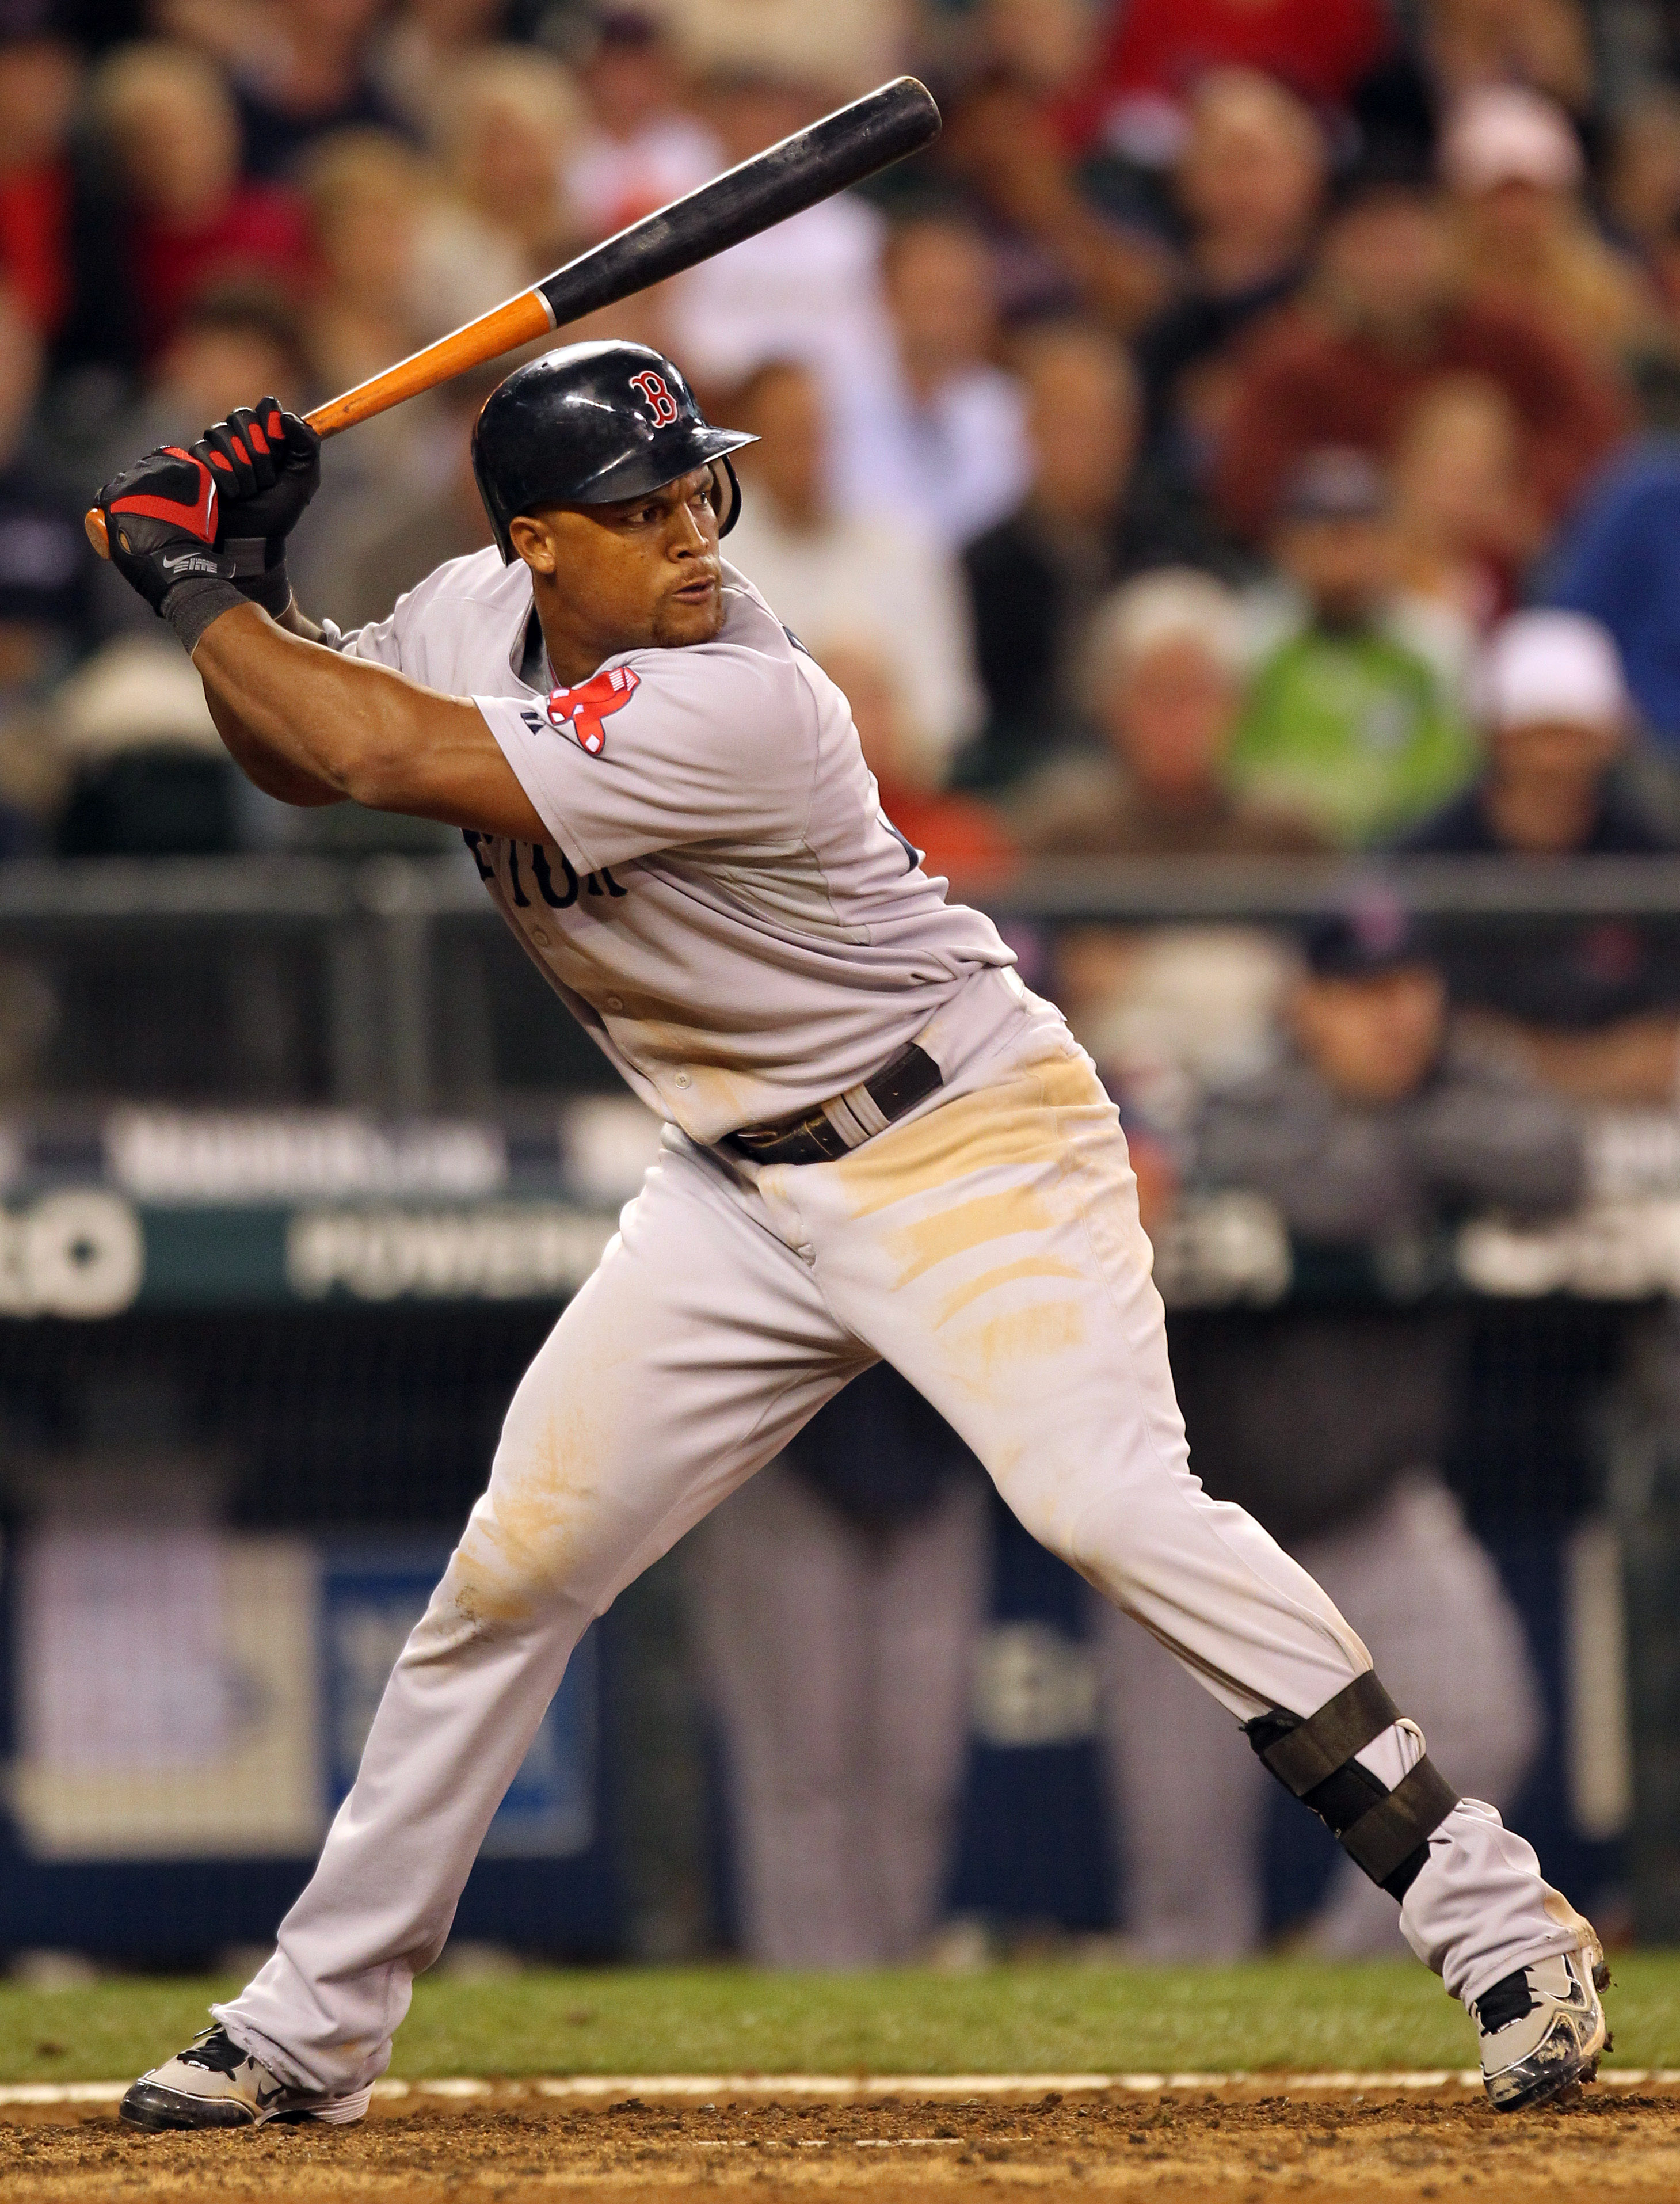 SEATTLE - SEPTEMBER 15:  Adrian Beltre #29 of the Boston Red Sox bats against the Seattle Mariners at Safeco Field on September 15, 2010 in Seattle, Washington. (Photo by Otto Greule Jr/Getty Images)